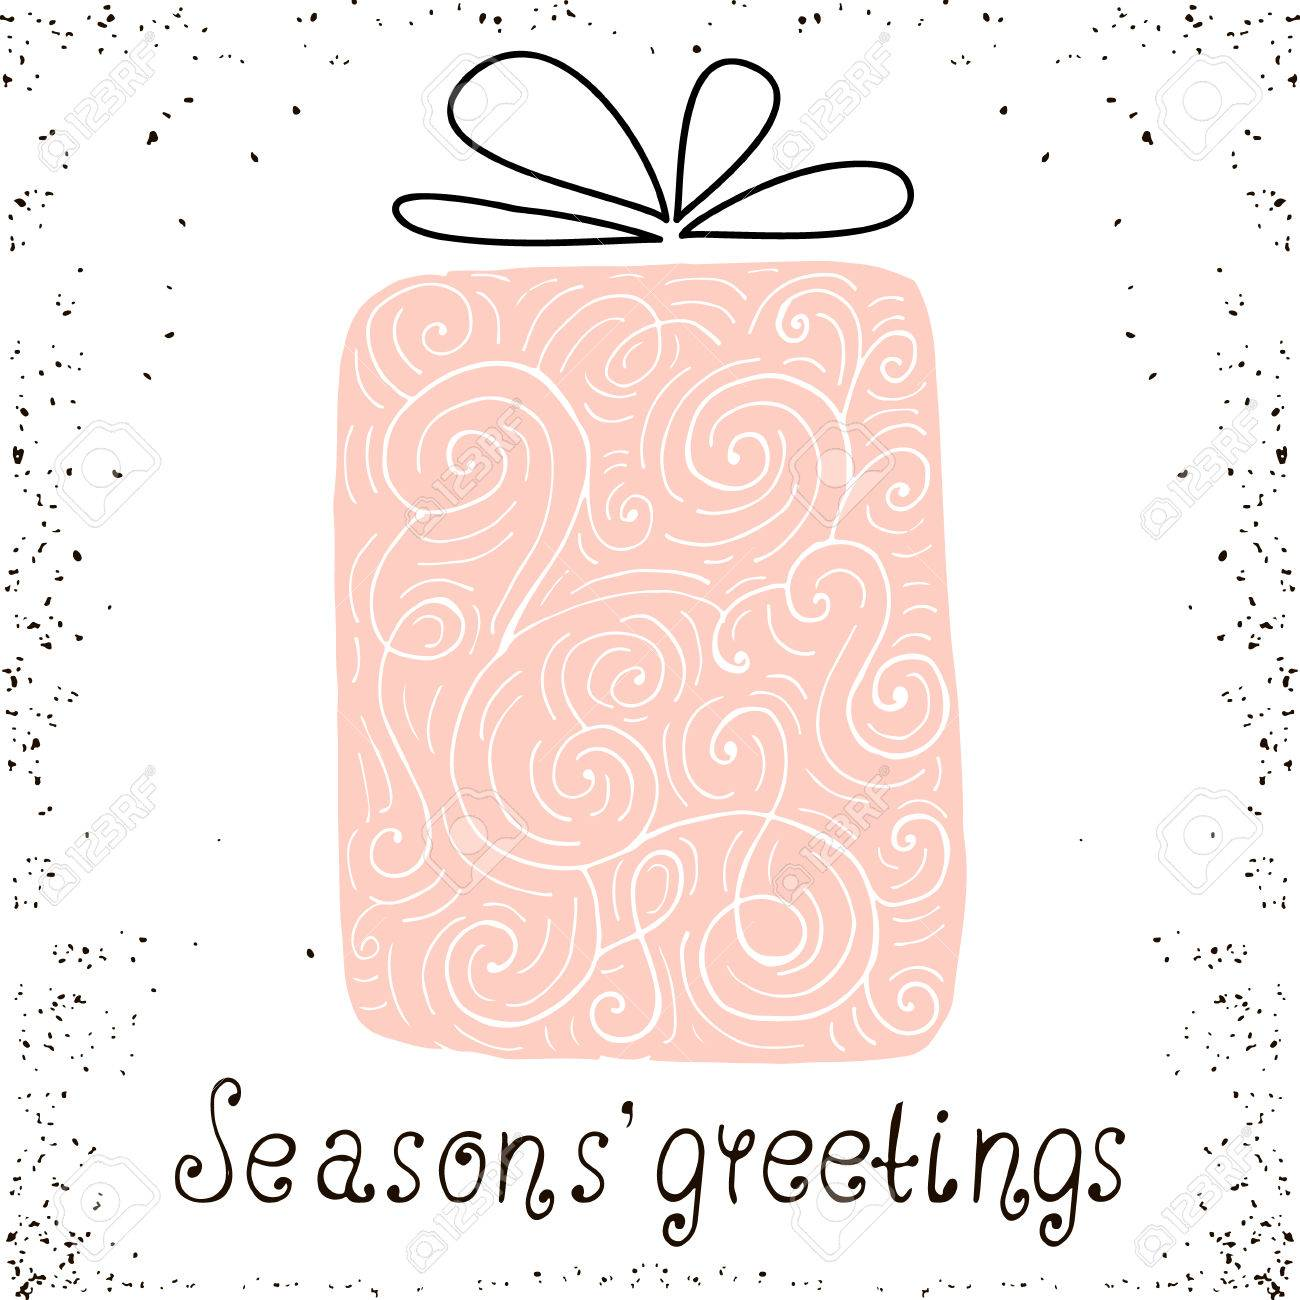 Best wishes christmas trendy design greeting card holiday winter x mass vector background with gift best wishes christmas trendy design greeting card holiday winter template with handwritten lettering m4hsunfo